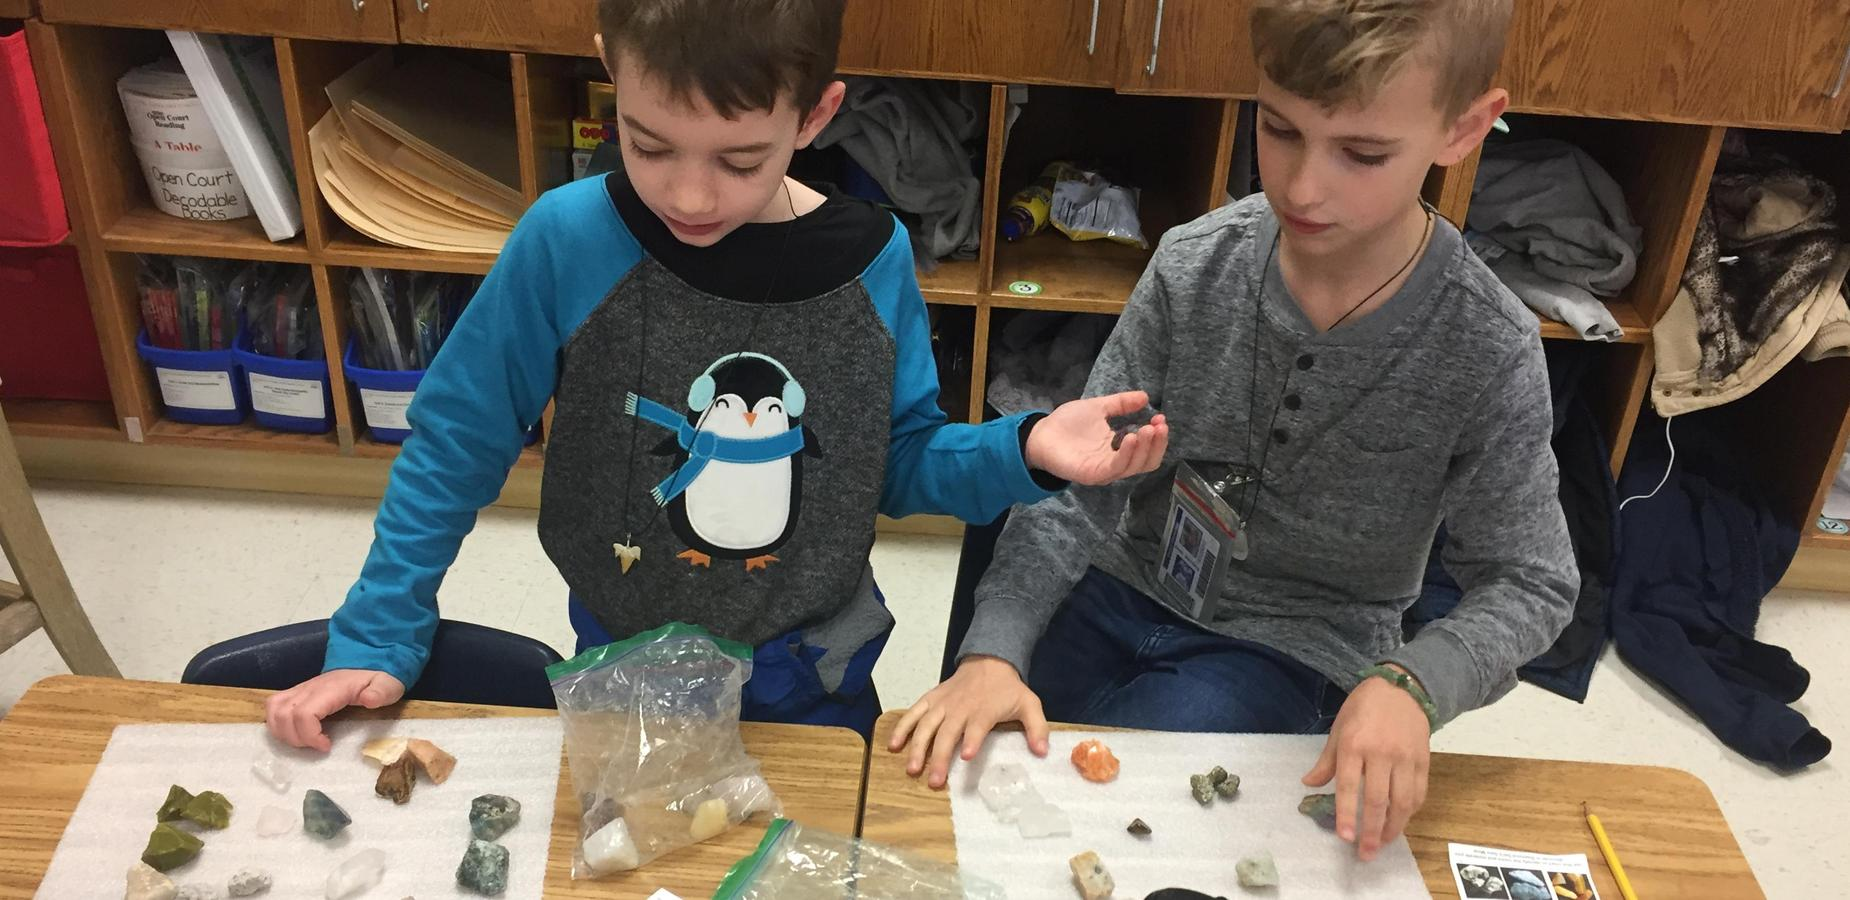 Students doing experiments with rocks